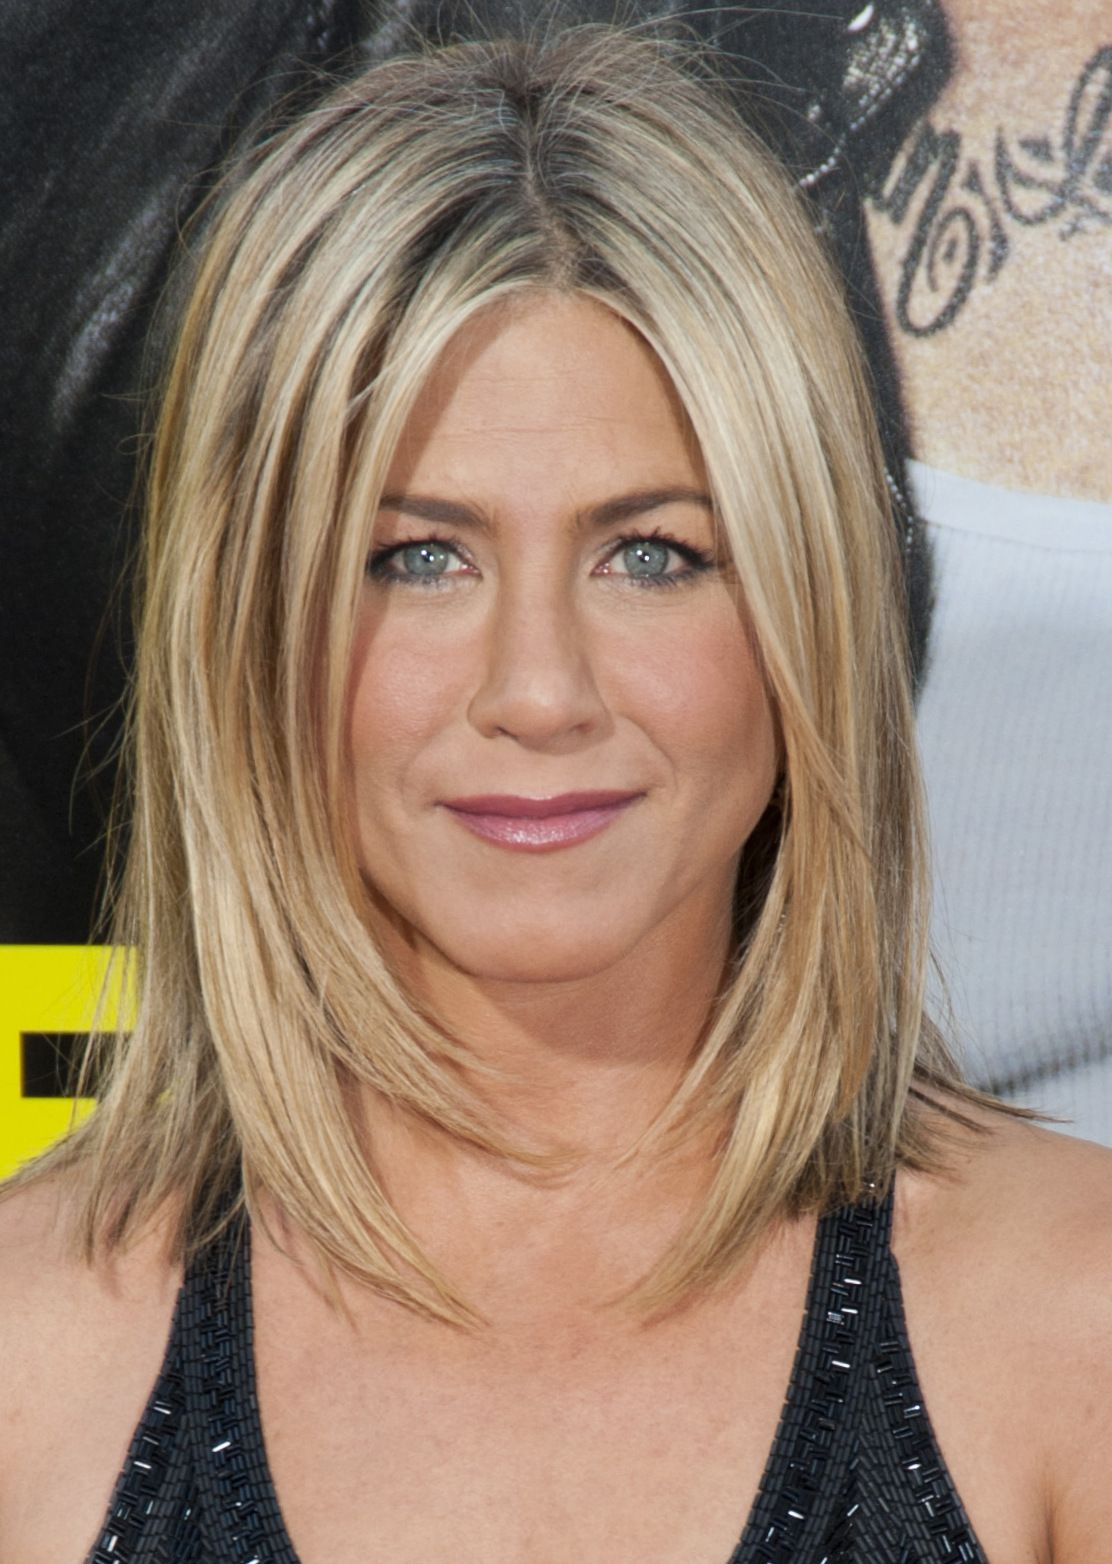 jennifer aniston famous celebrities pinterest. Black Bedroom Furniture Sets. Home Design Ideas